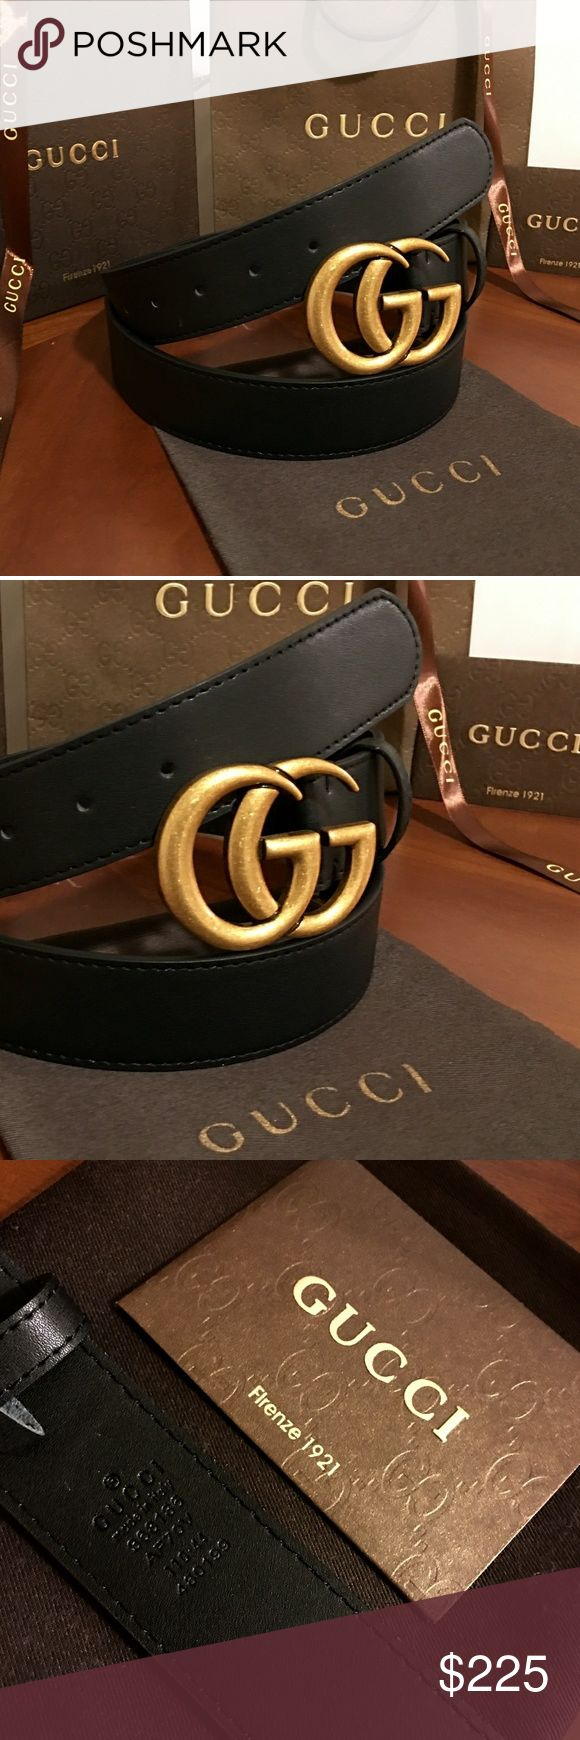 """Gucci Double G Belt!!! Gucci GG Belt W/Antique Brass Double G Buckle!!!  Brand New!!!  Unisex....For Man Or Woman!!!  Size Available - 30"""", 32"""", 34"""", 36"""", 38"""", 40"""", 42""""!!!  Includes Gucci Belt, Gift Box, Dust Bag, Ribbon, Etc!!!  Great Gift Idea!!!  Last Available!!!  Check My Listings For Other Great Items!!!               Ignore: Gucci gg monogram casual dress belts men's women's guccissma leather gold silver web tiger bee embossed panther cable knit blooms supreme print angry cat ufo…"""